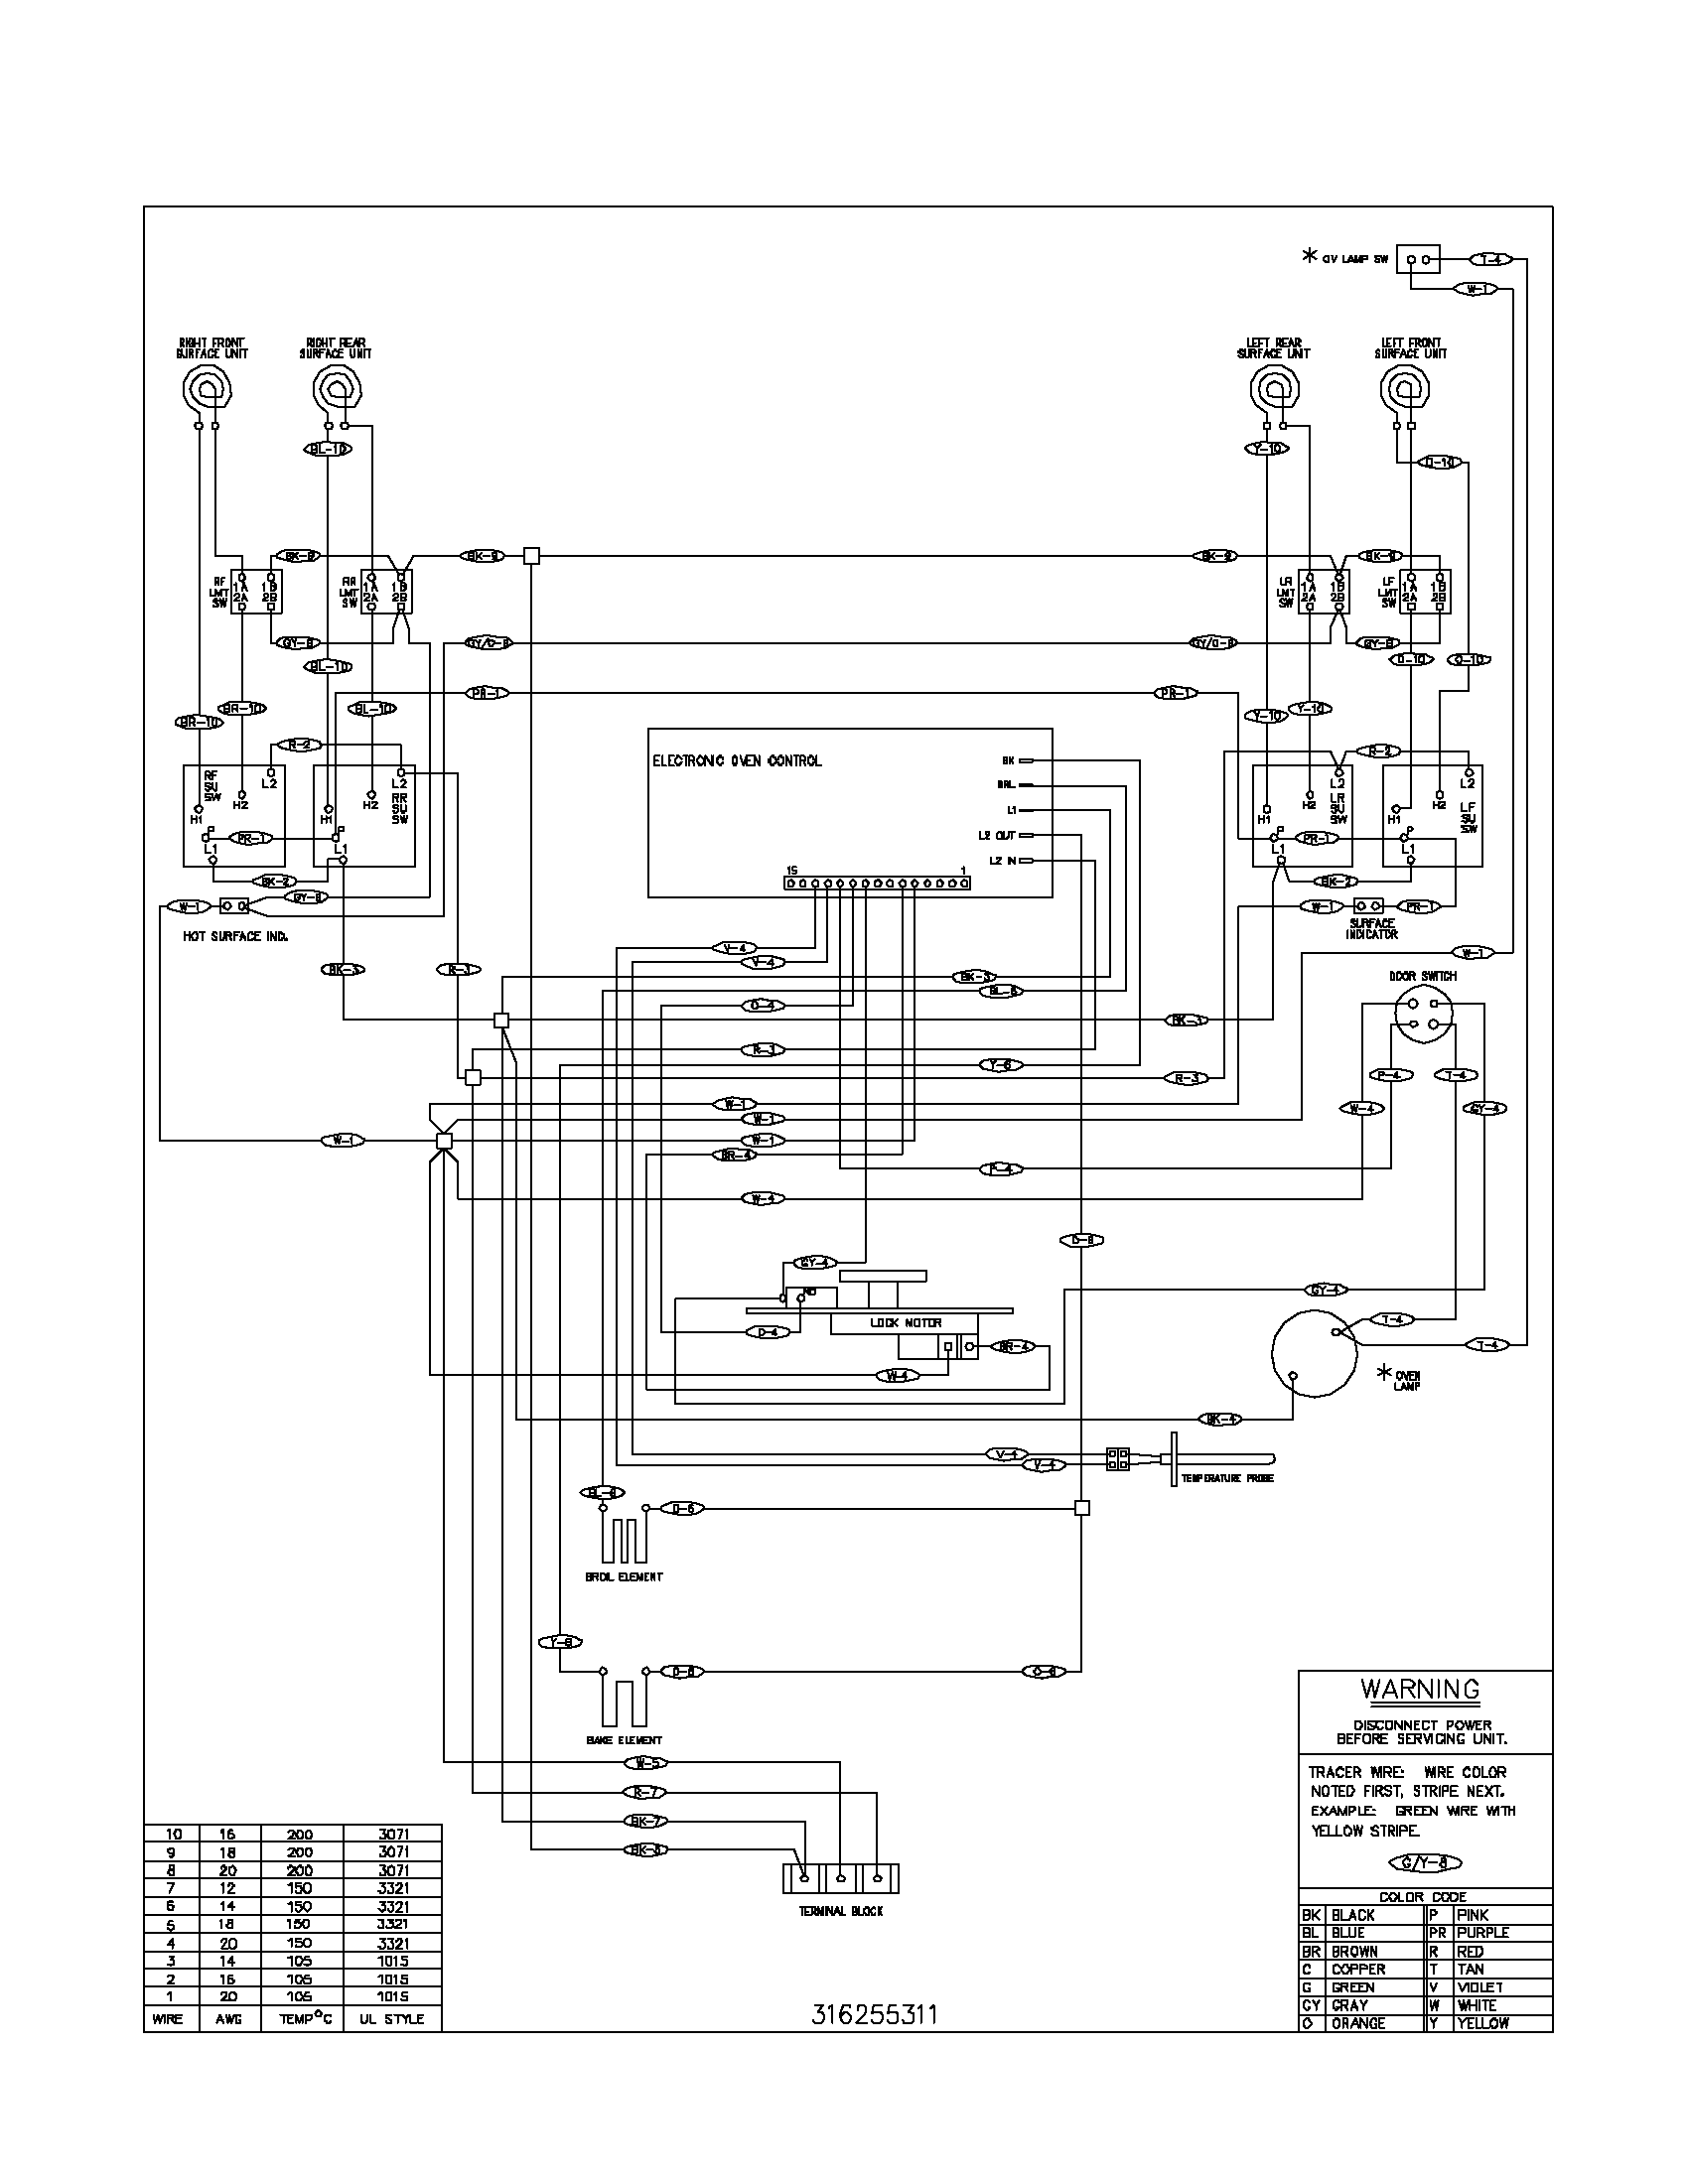 Universal Oven Thermostat Wiring Diagram 40 Images 220 Volt Parts Frigidaire Fef366ccb Electric Range Timer Stove Clocks And